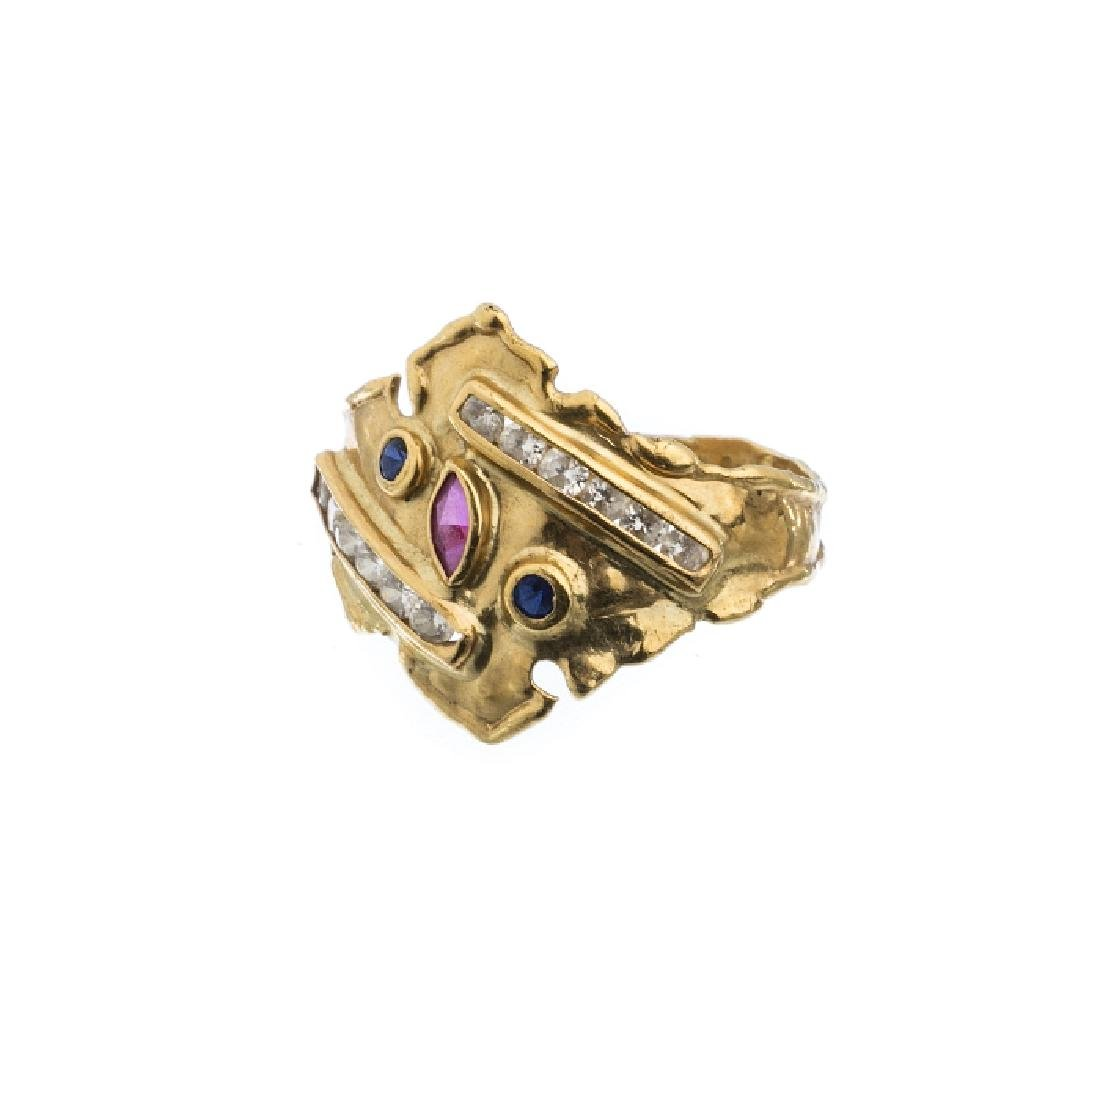 Modernist gold ring with stones